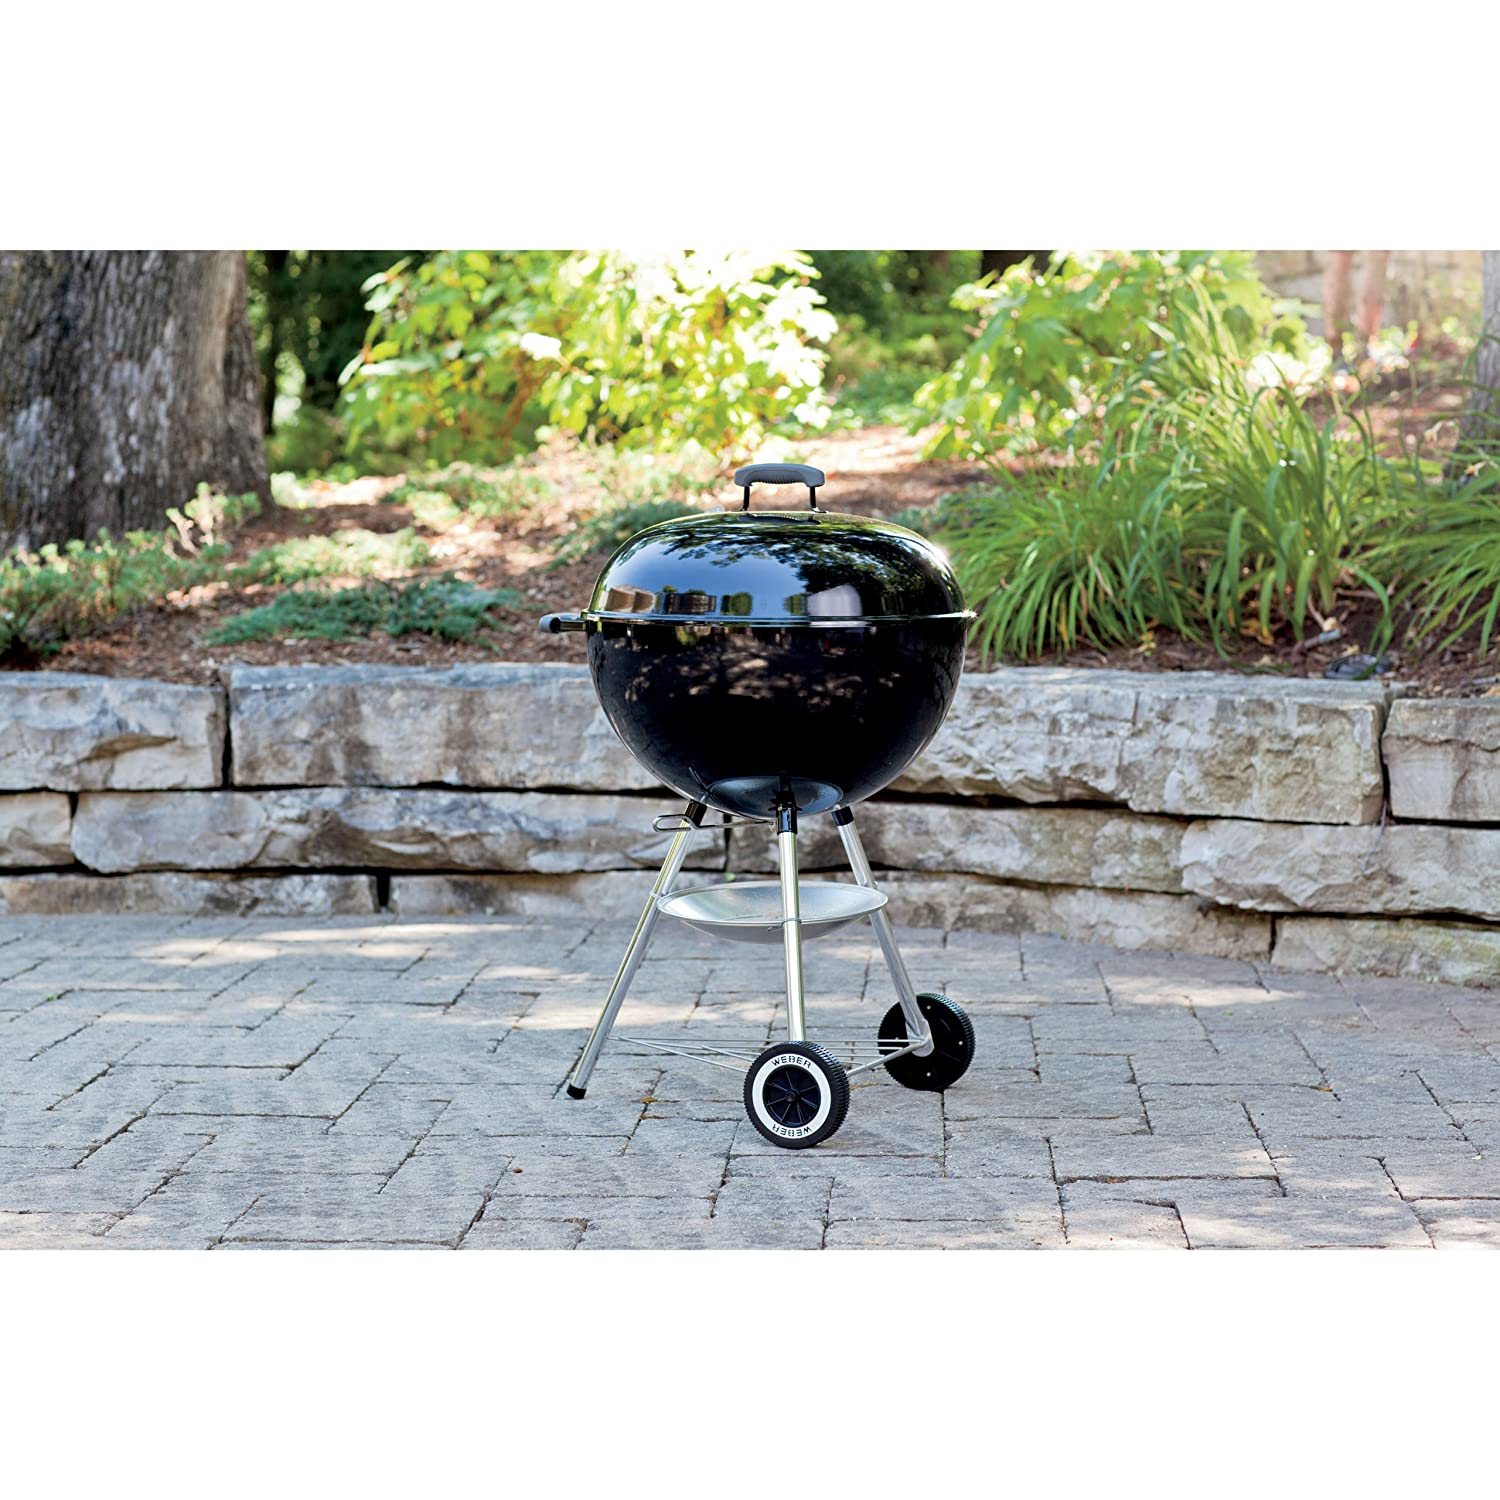 One of the Best Charcoal Grills Under $100